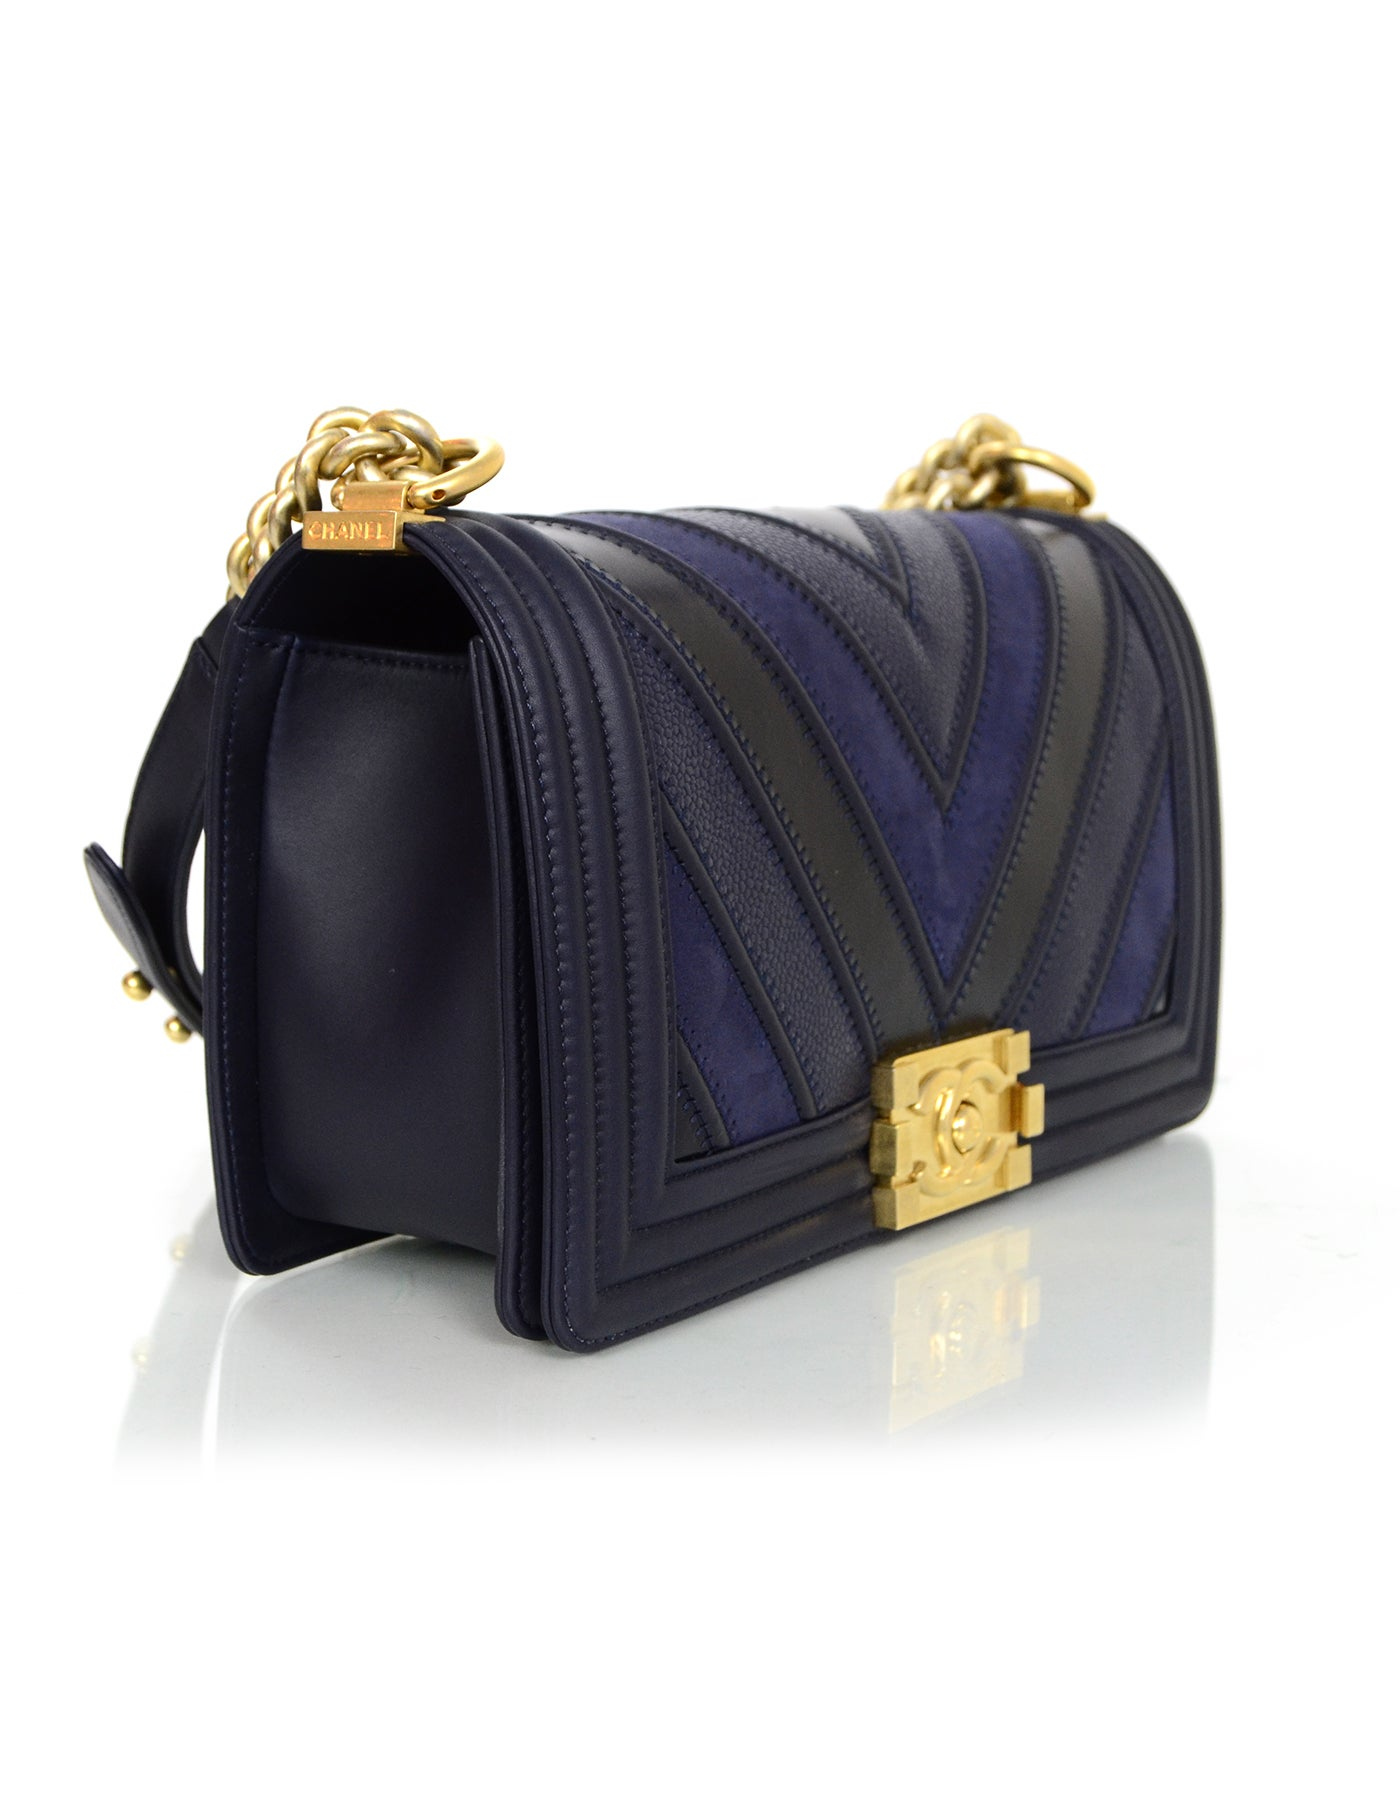 53291f036a71 Chanel 2016 Navy Mixed Leather Patchwork Chevron Old Medium Boy Bag GHW at  1stdibs